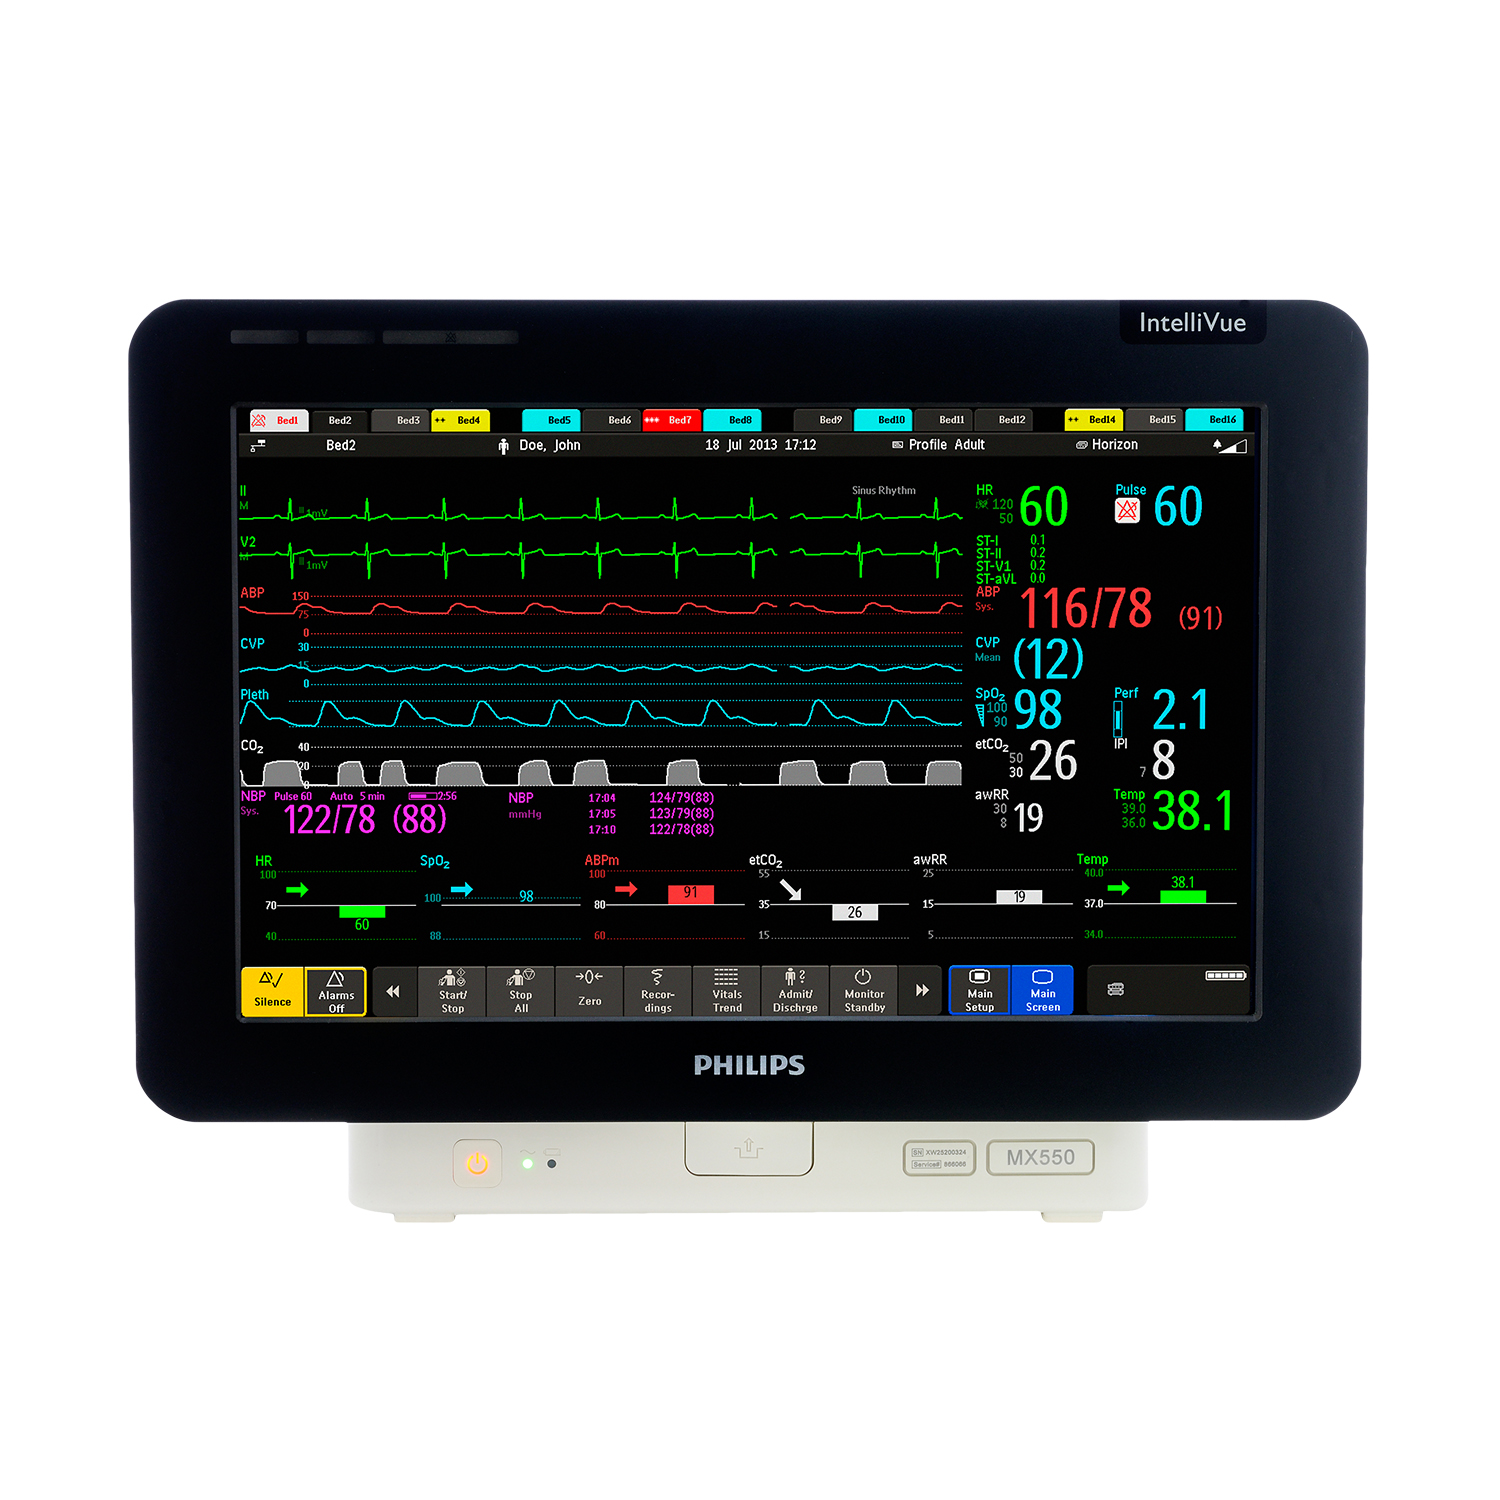 Philips IntelliVue MX550 Patient Monitor